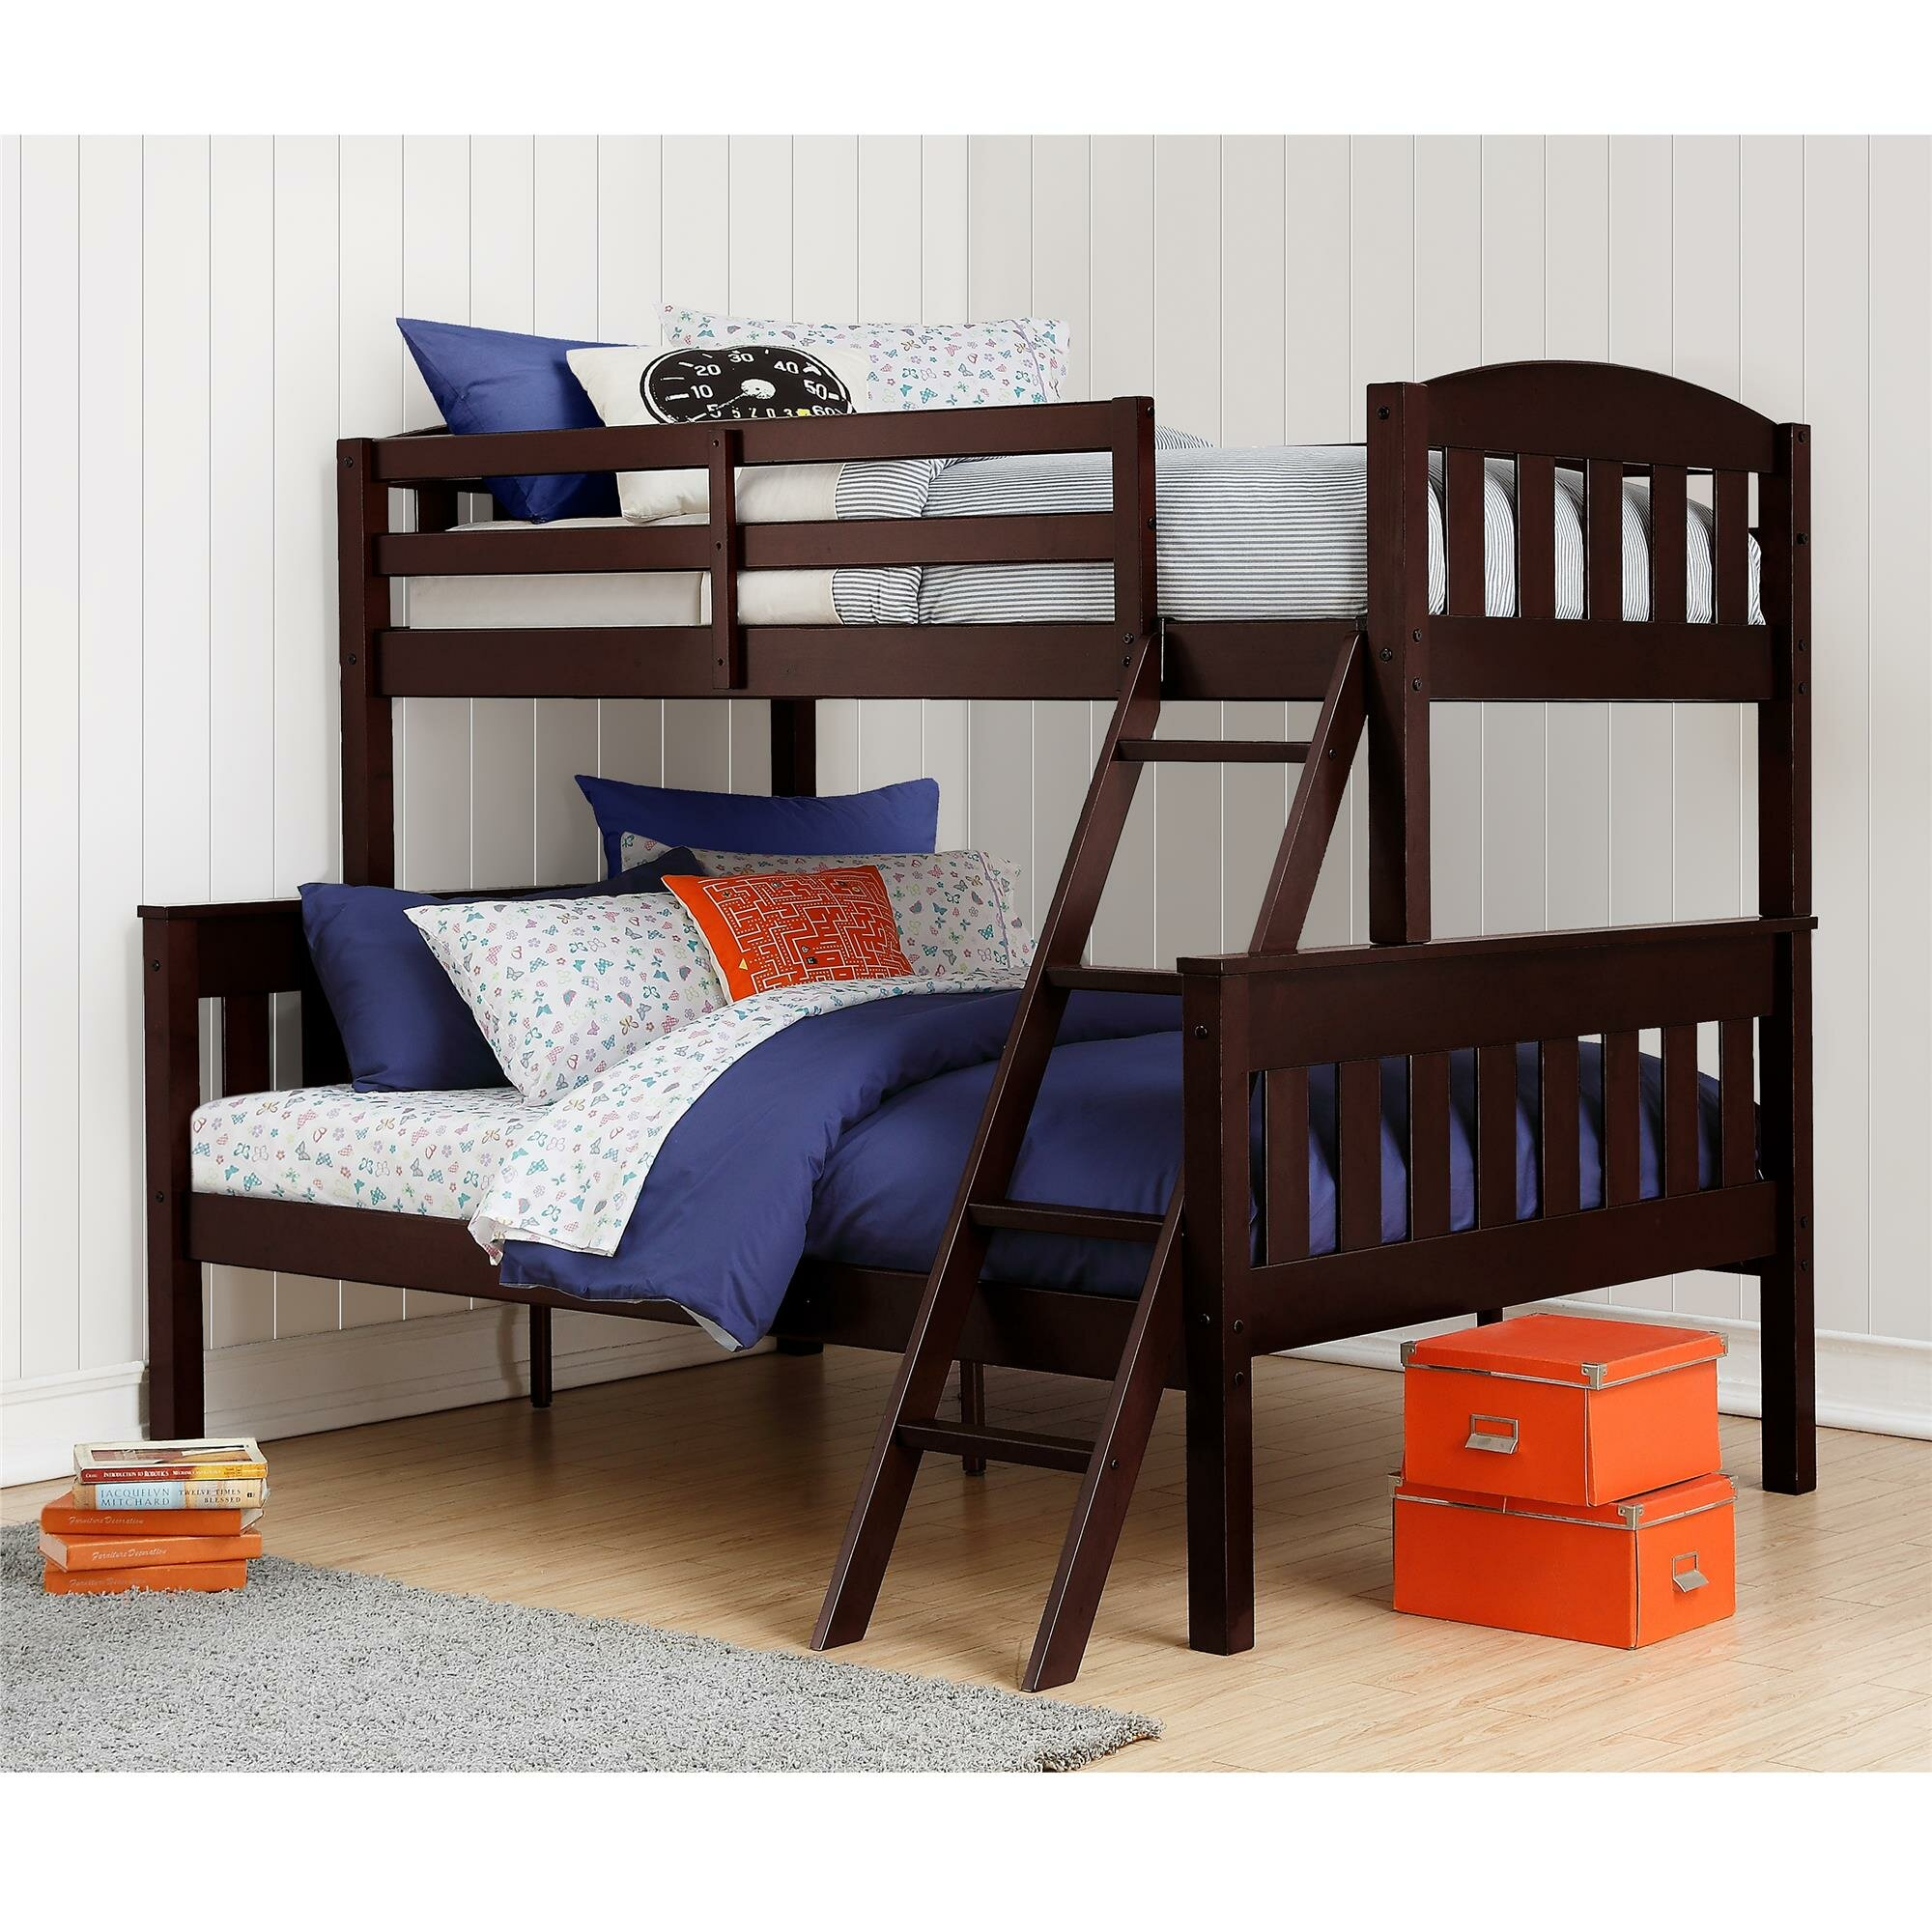 zoomie kids immanuel twin over full bunk bed reviews. Black Bedroom Furniture Sets. Home Design Ideas